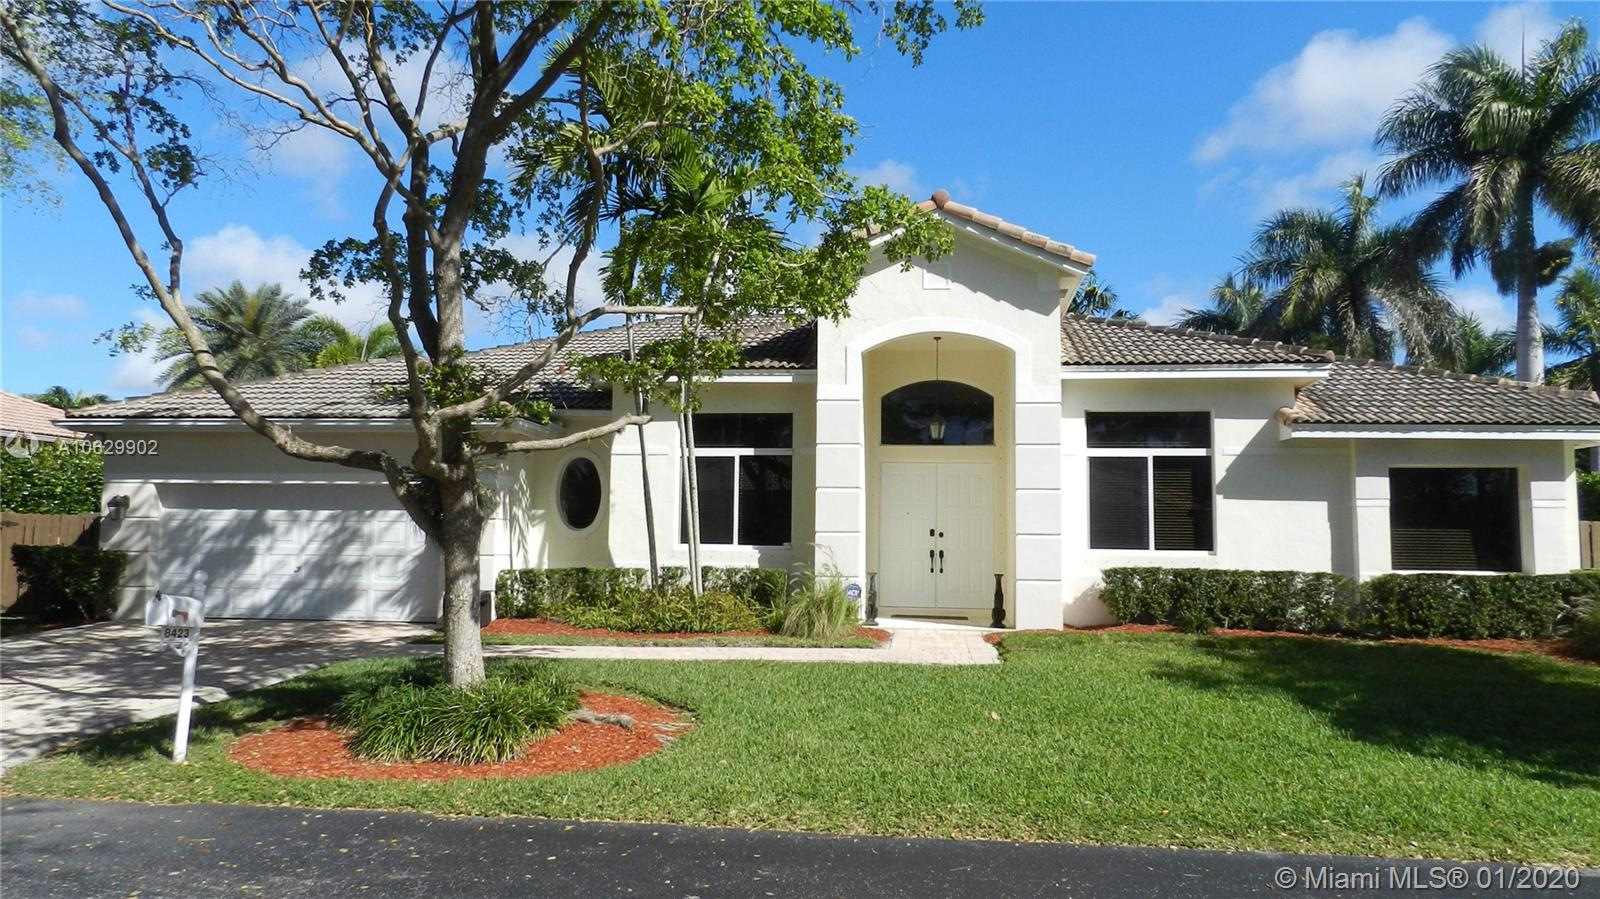 8423 SW 137th St, Kendall, Florida